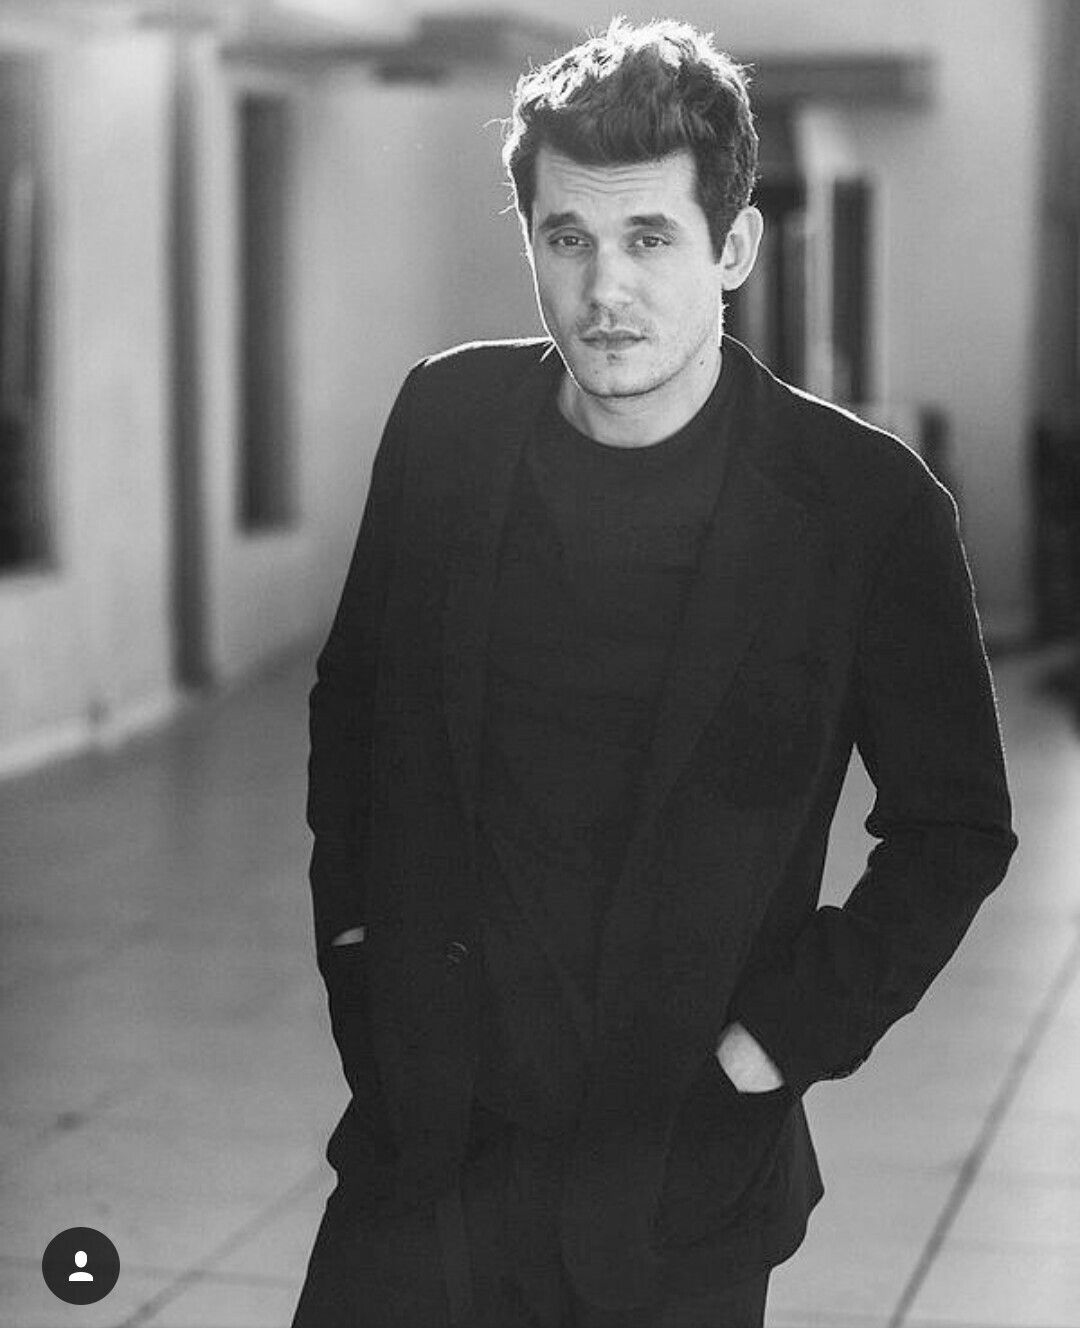 Brothers John Mayer: Pin By Joselle Abad On Good-looking People :)